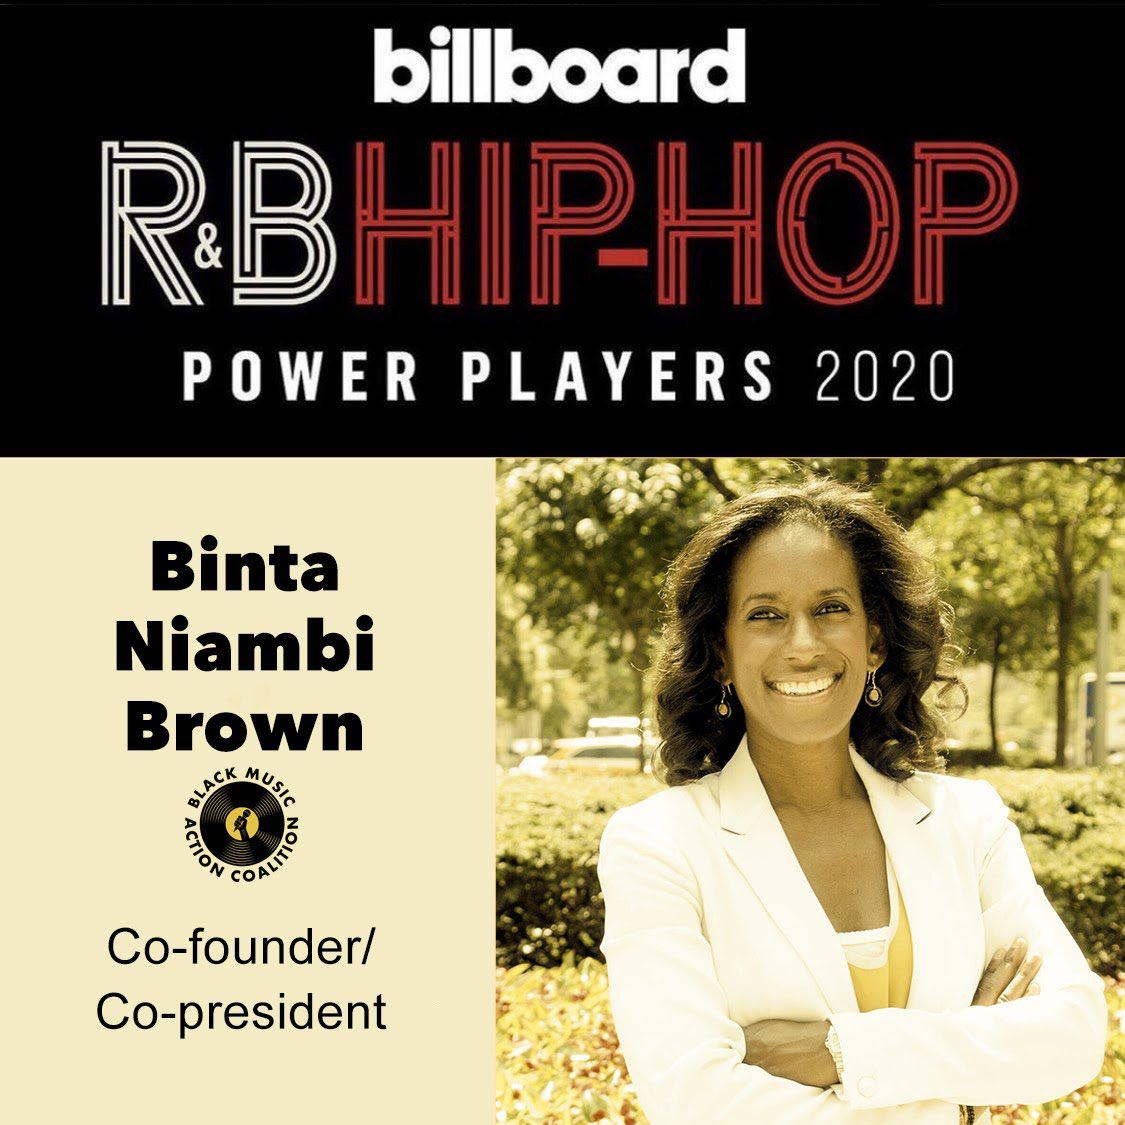 Thanks @billboard for recognizing the work of the Black Music Action Coalition! So much more work to be done! #BlackMusicMatters #BlackLivesMatter